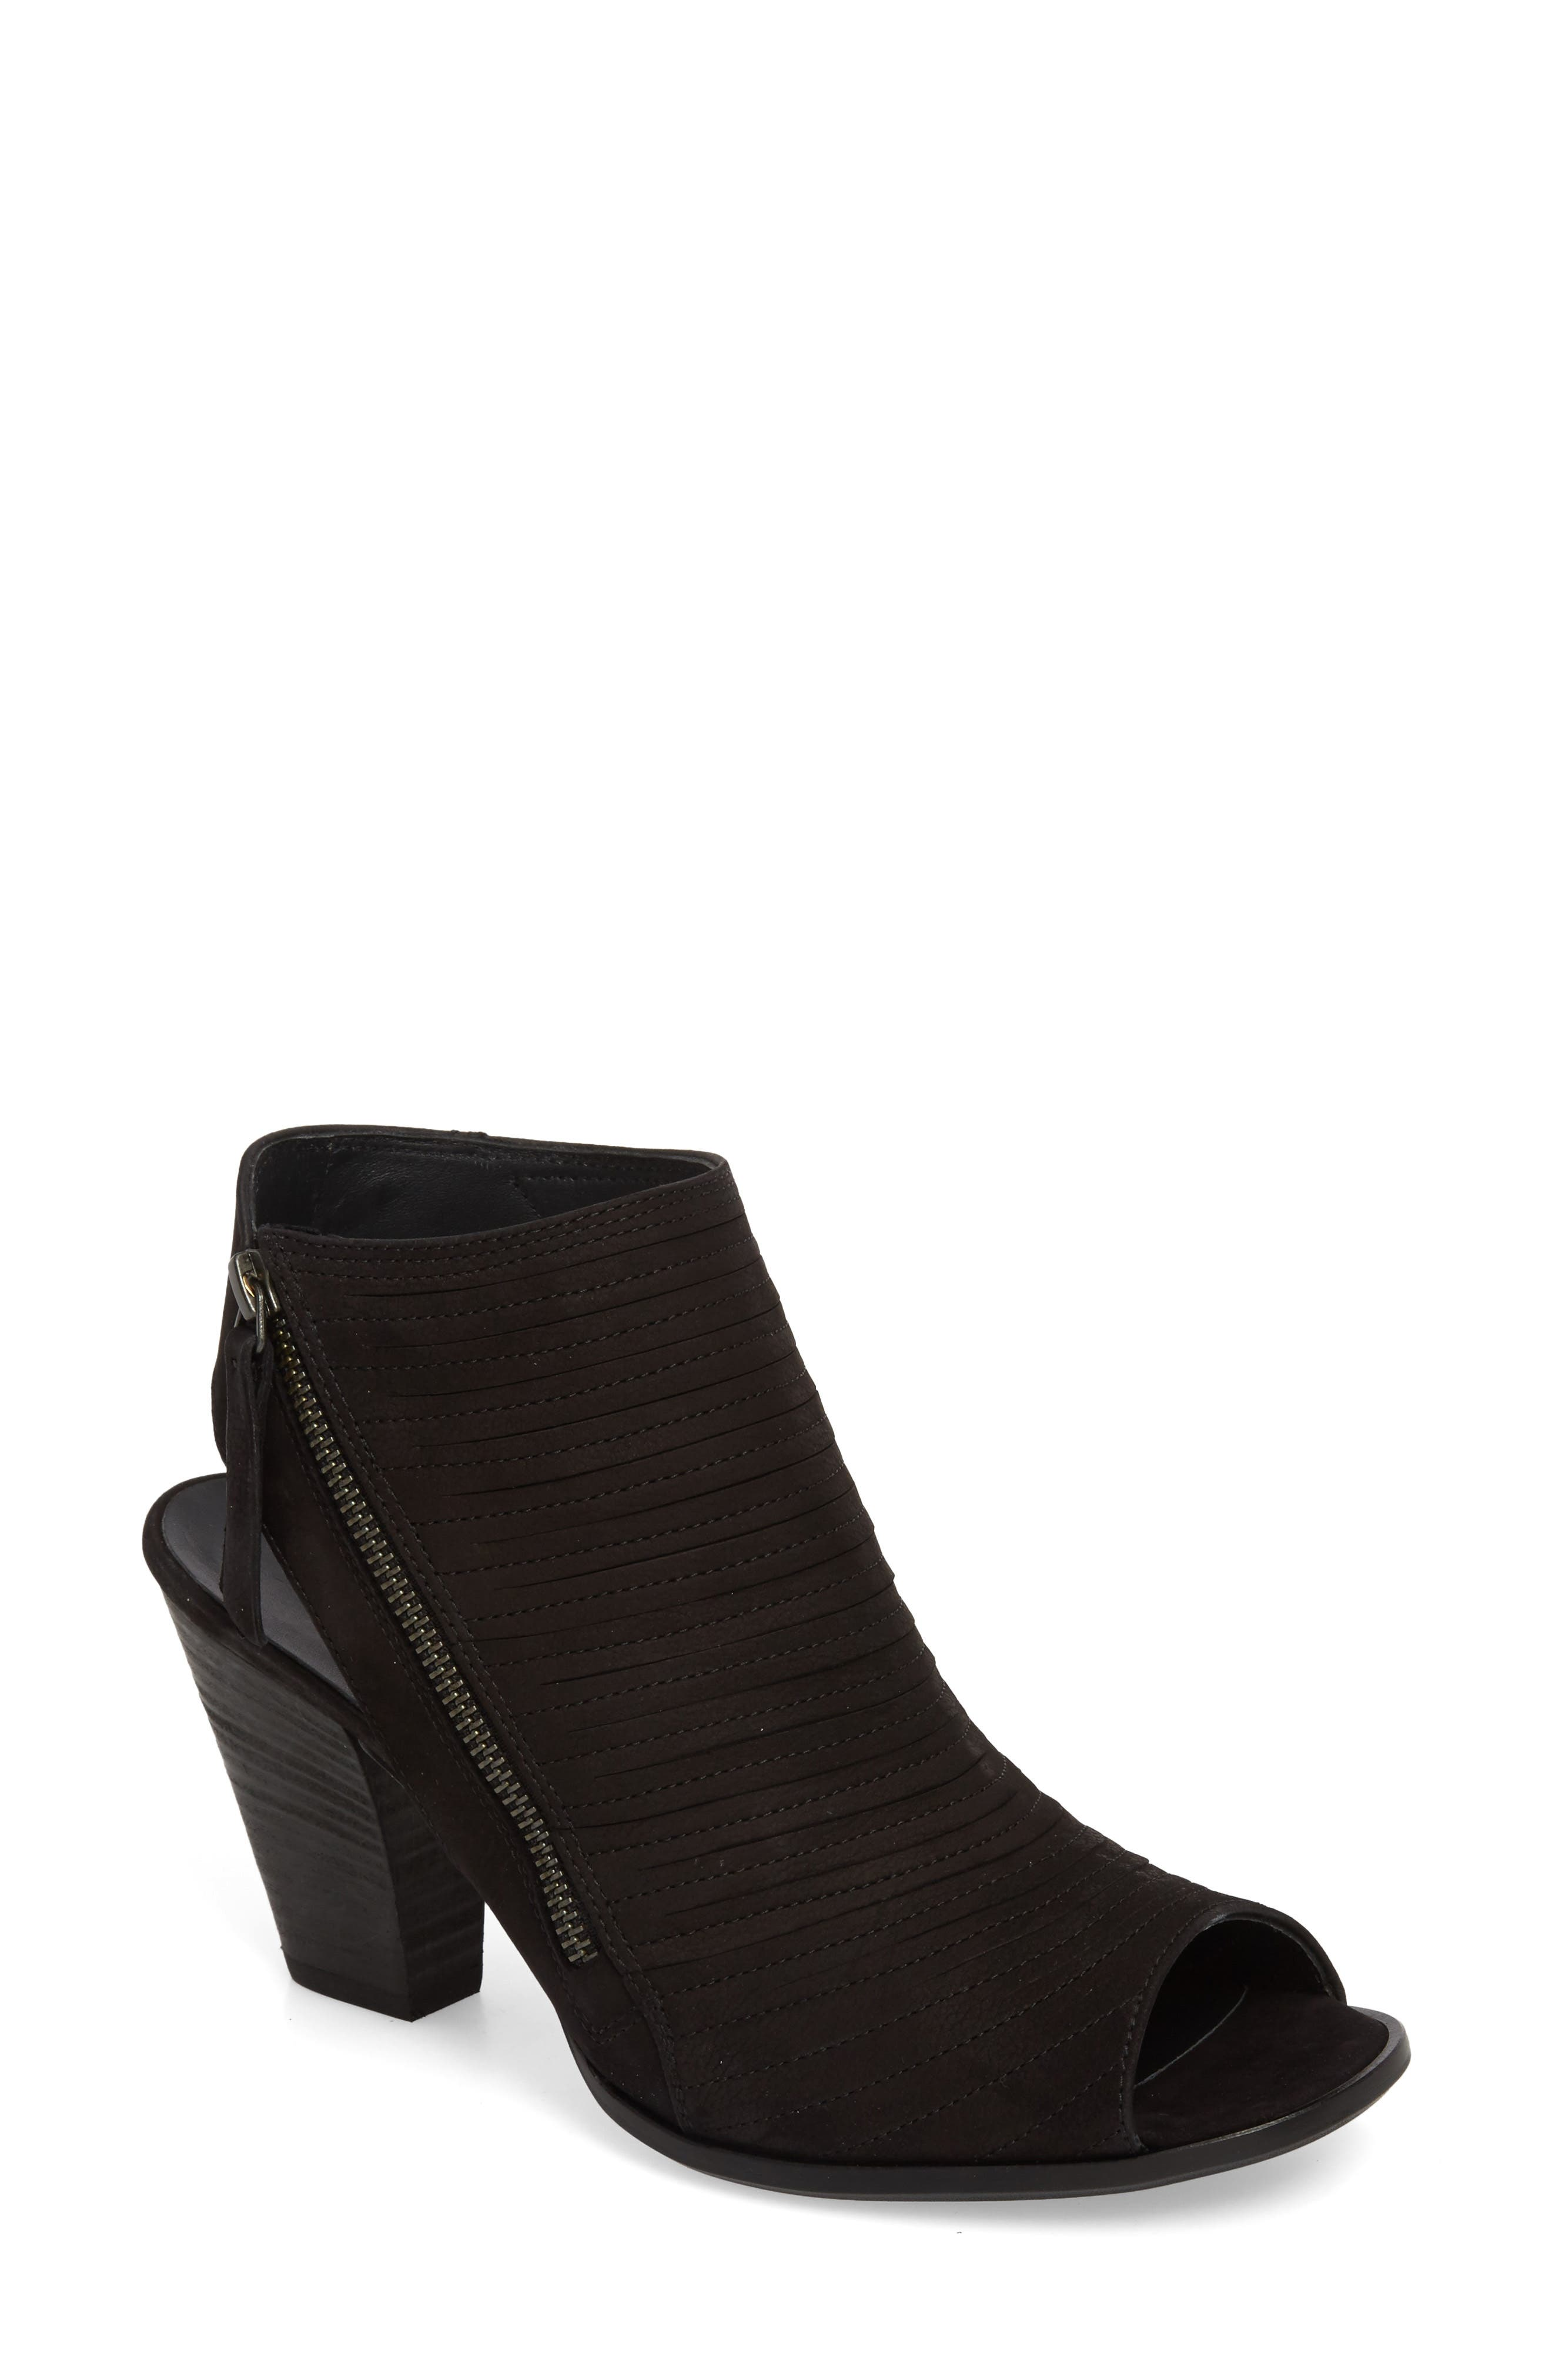 'Cayanne' Leather Peep Toe Sandal, Main, color, 006